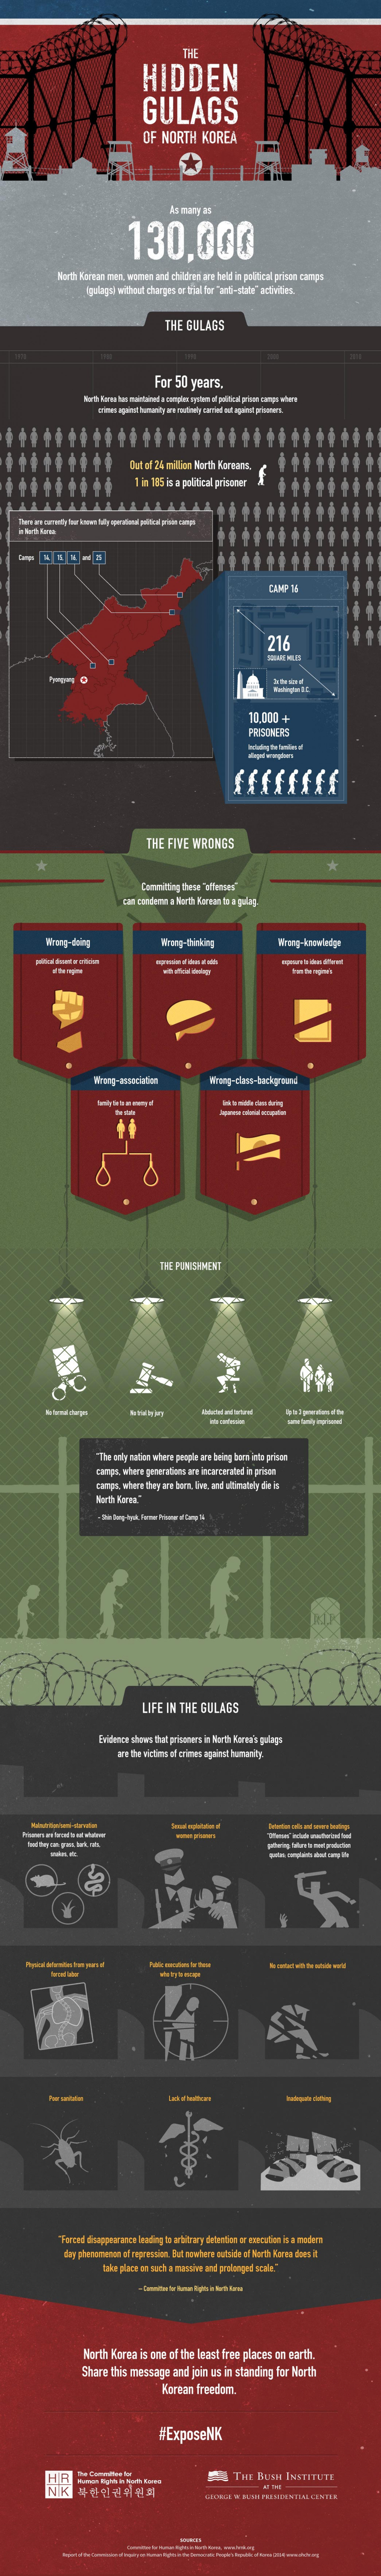 The Hidden Gulags of North Korea Infographic